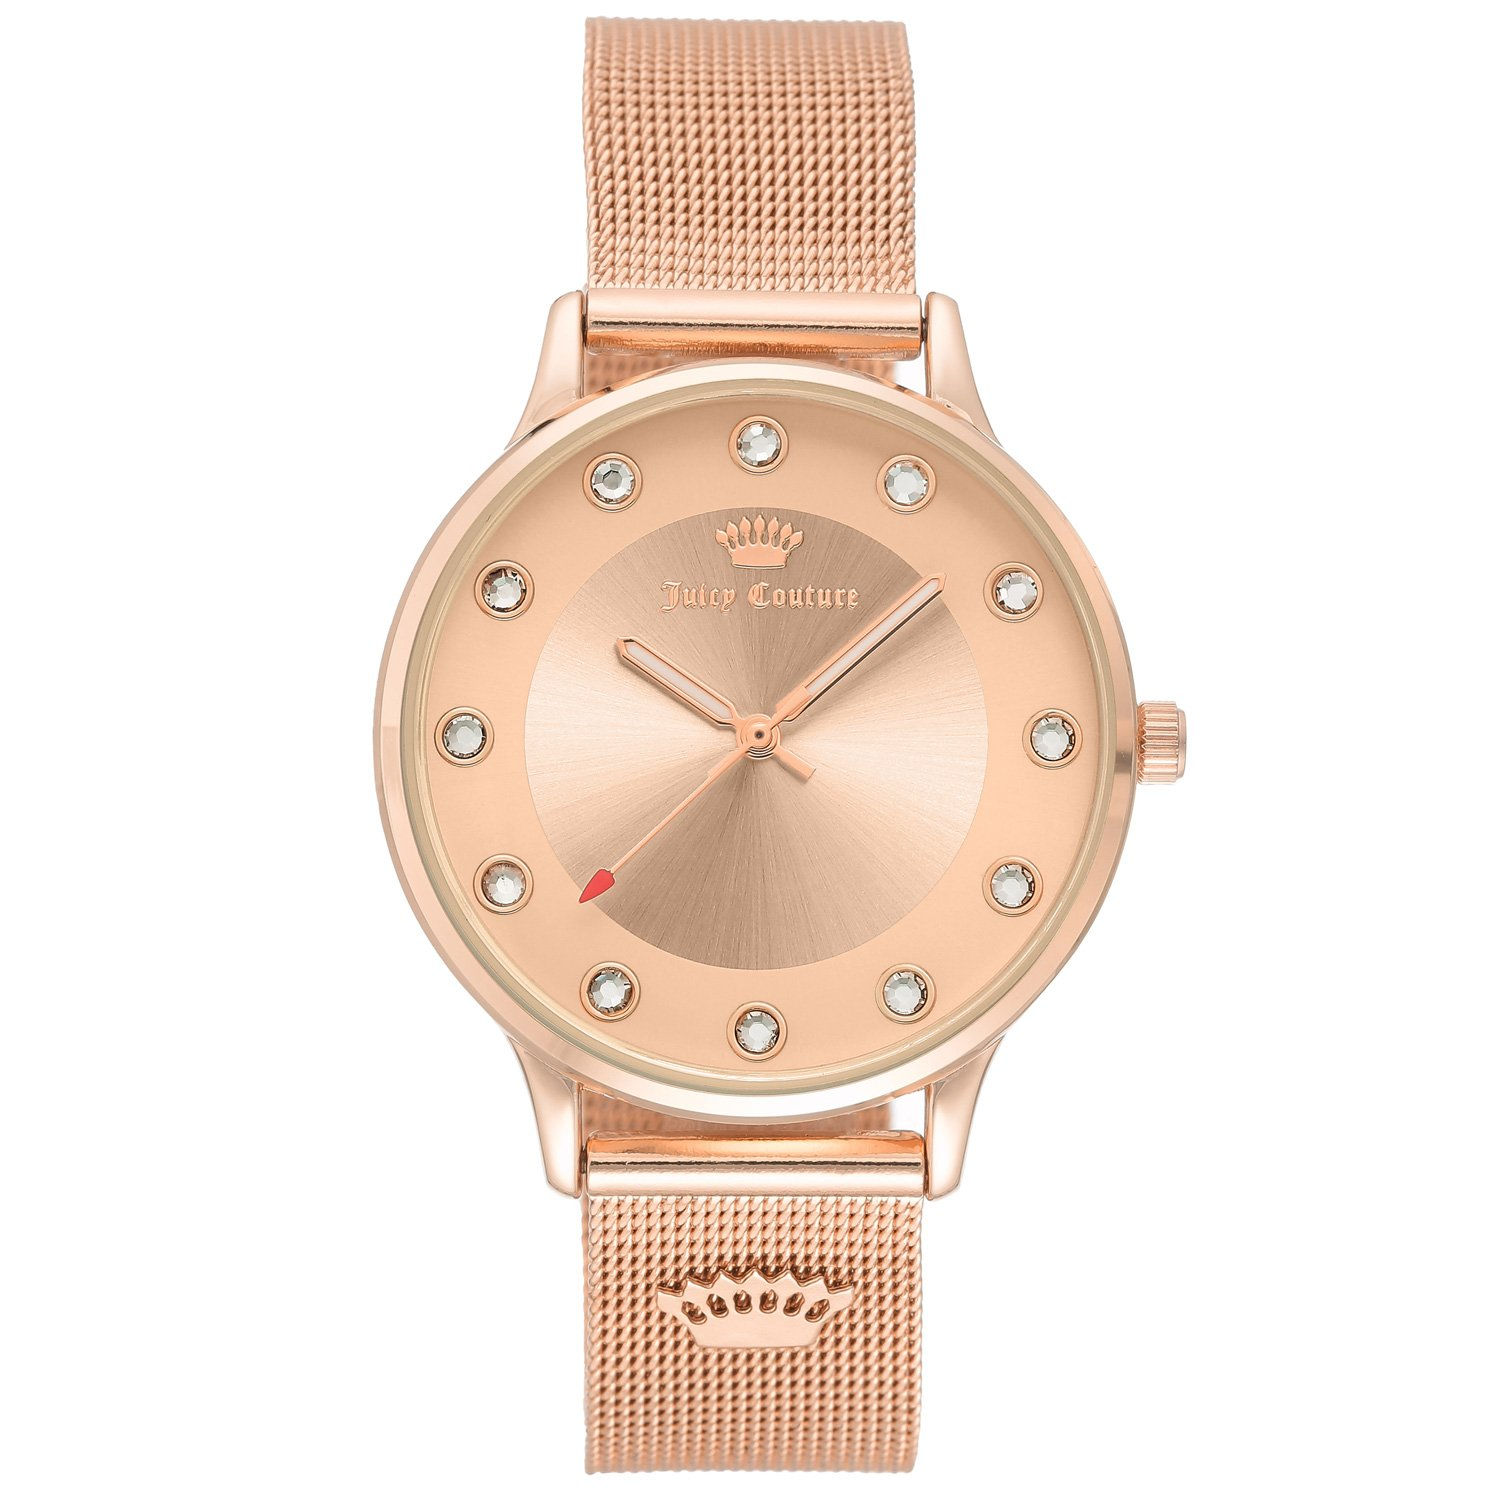 Juicy Couture Women's Watch Rose Gold JC/1128RGRG